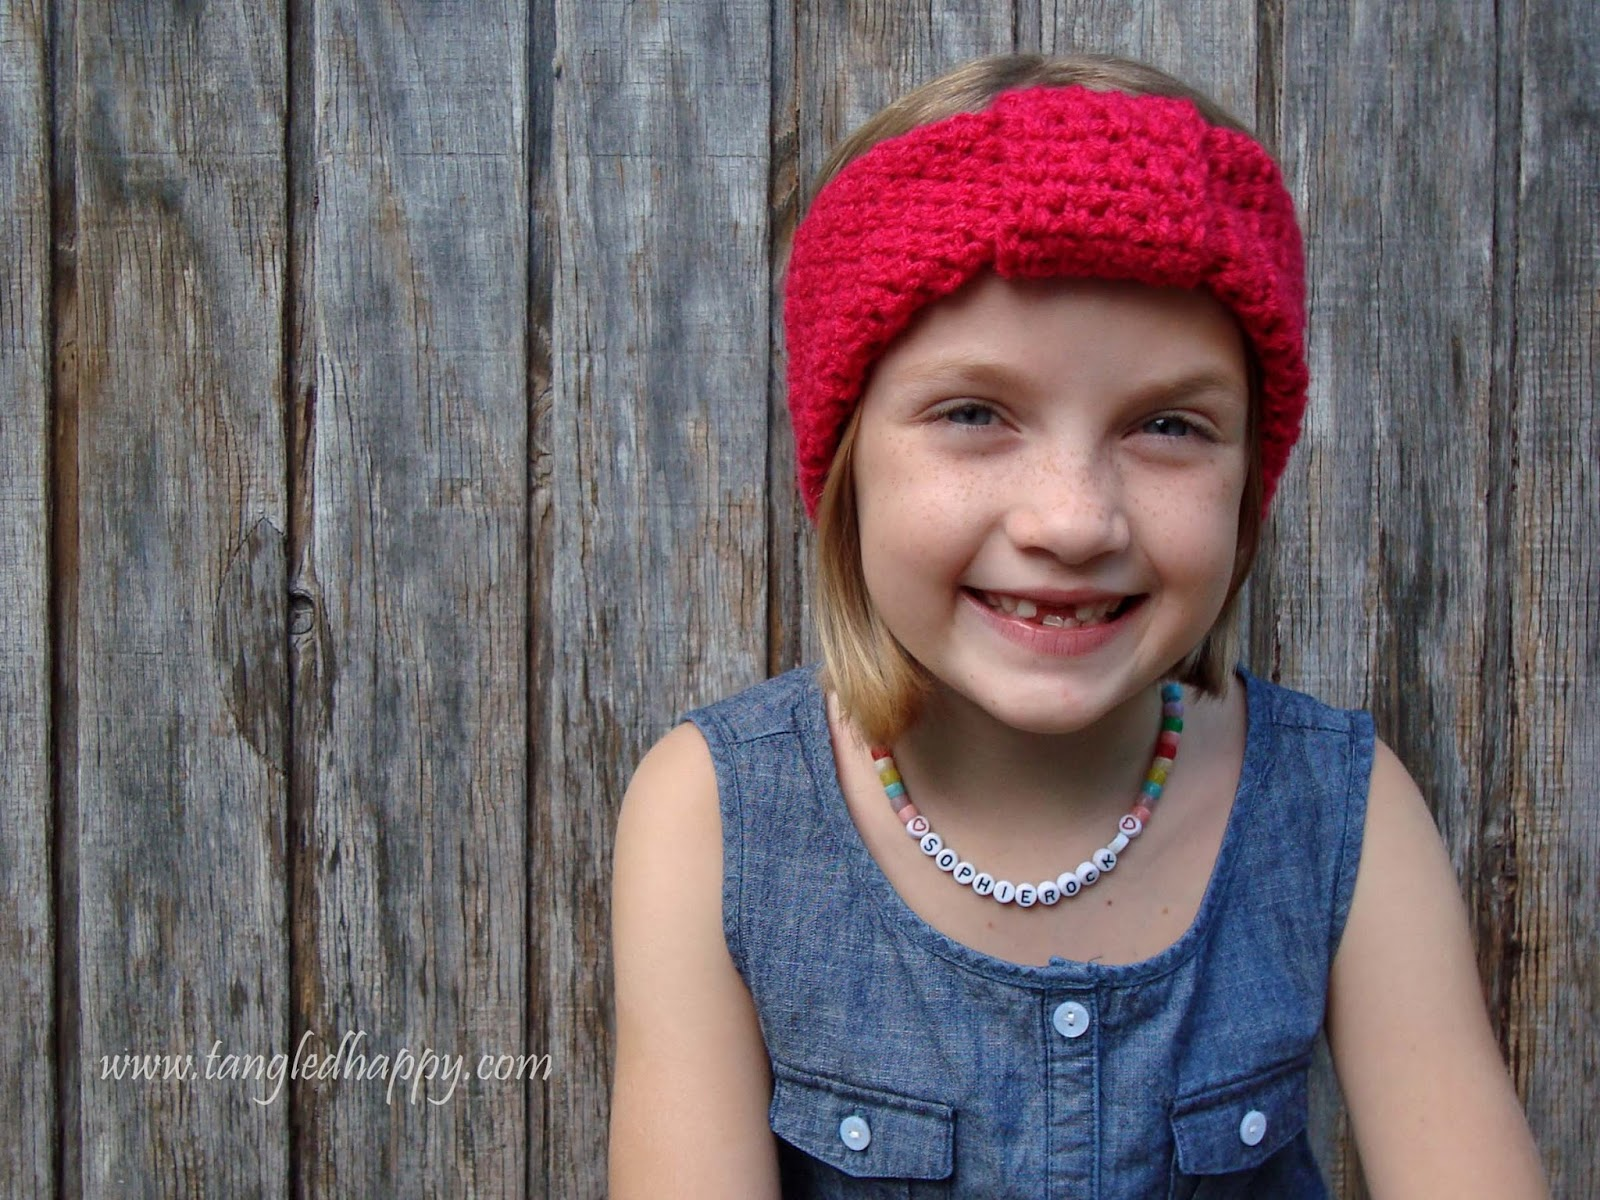 Free Crochet Pattern For Turban Headband : tangled happy: Free Easy Turban Headband Crochet Pattern ...